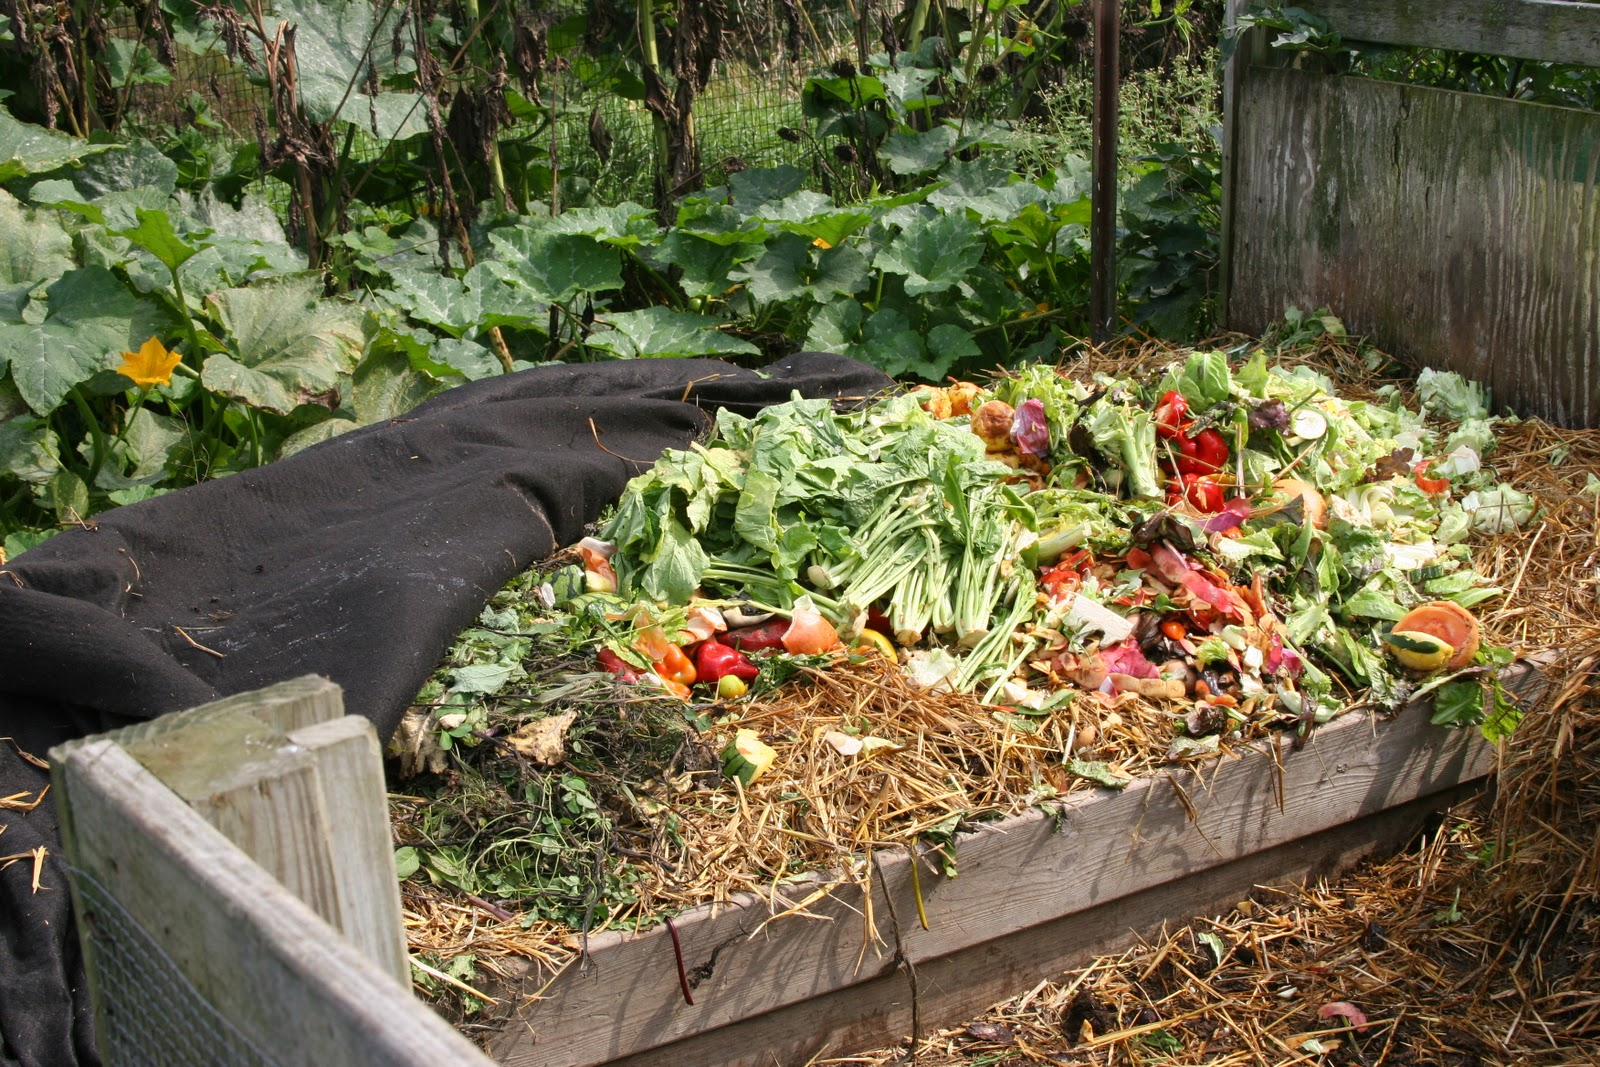 Composting is a simple way to enrich your garden soil and reduce trash.